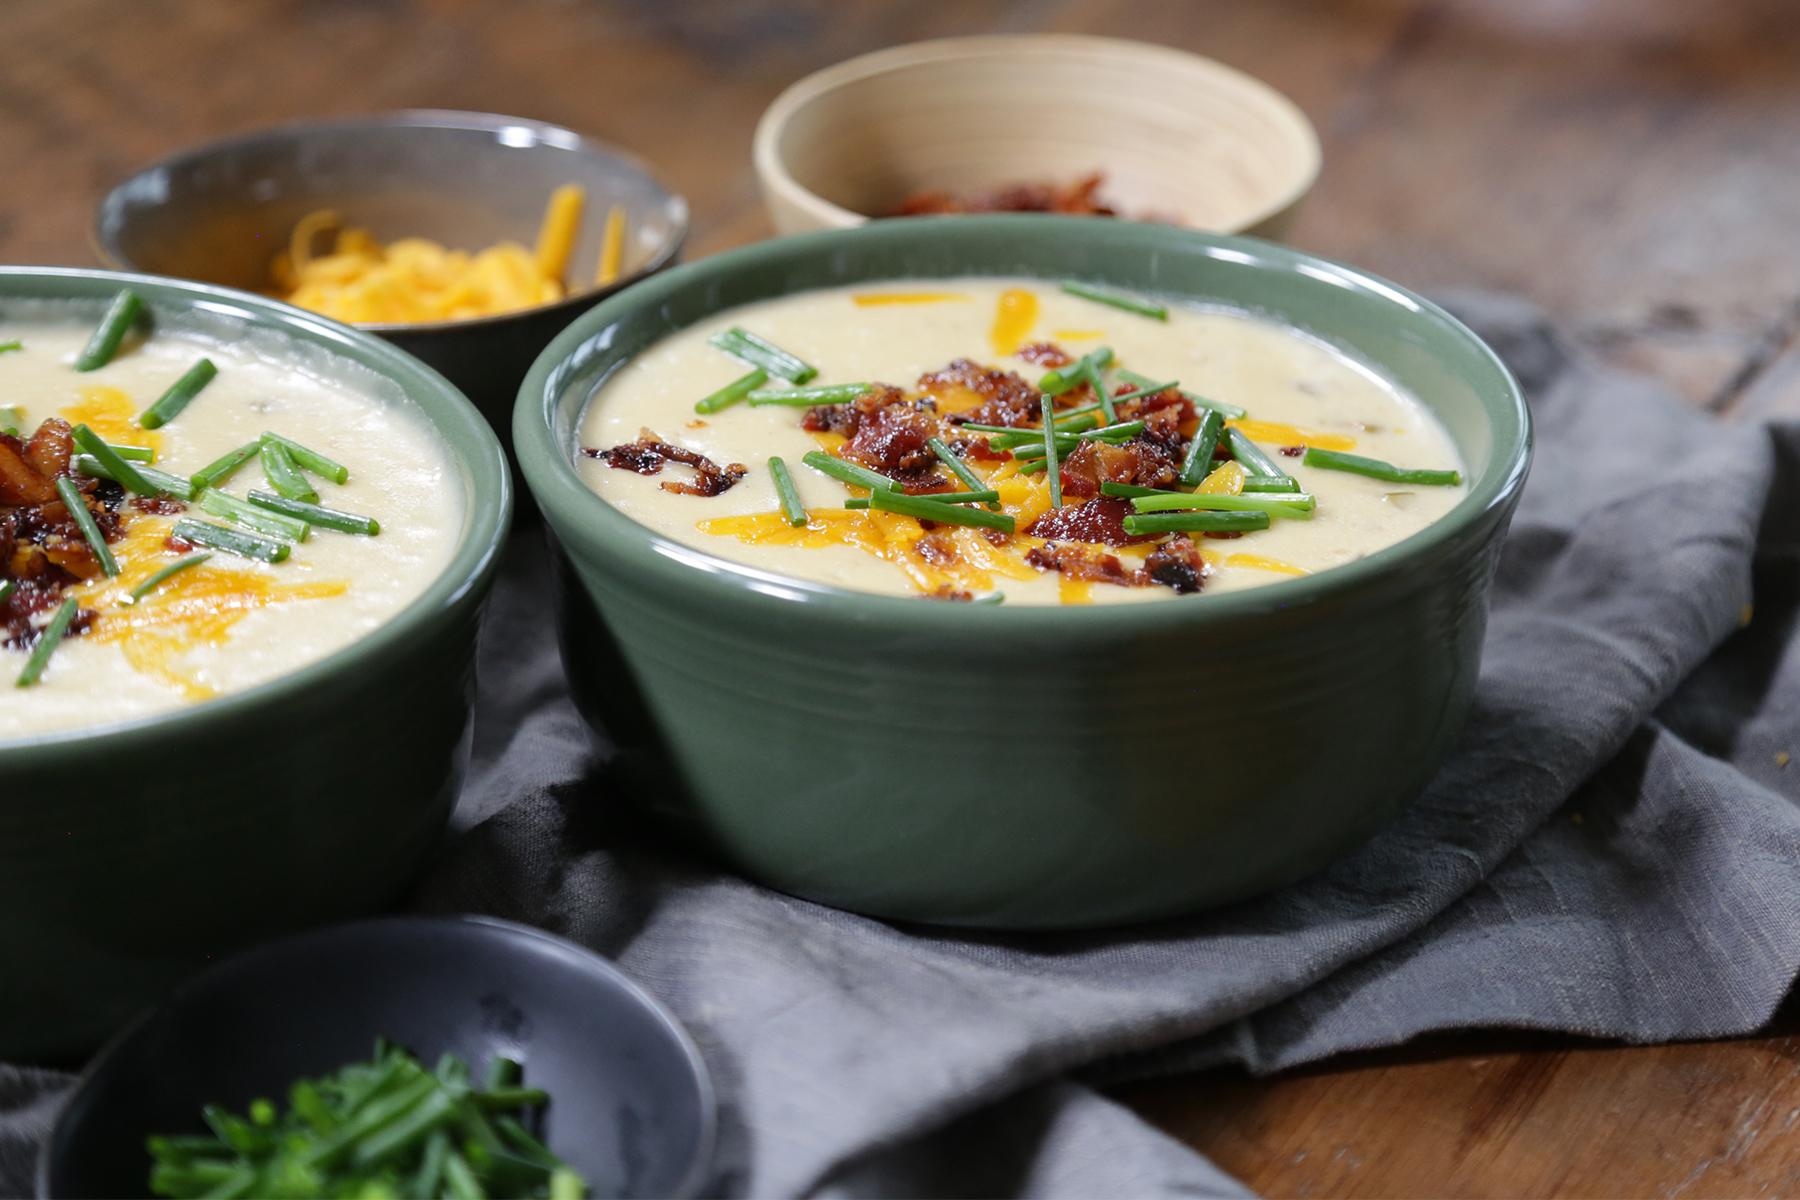 How to Make a Creamy Potato Soup from Leftover Mashed Potatoes